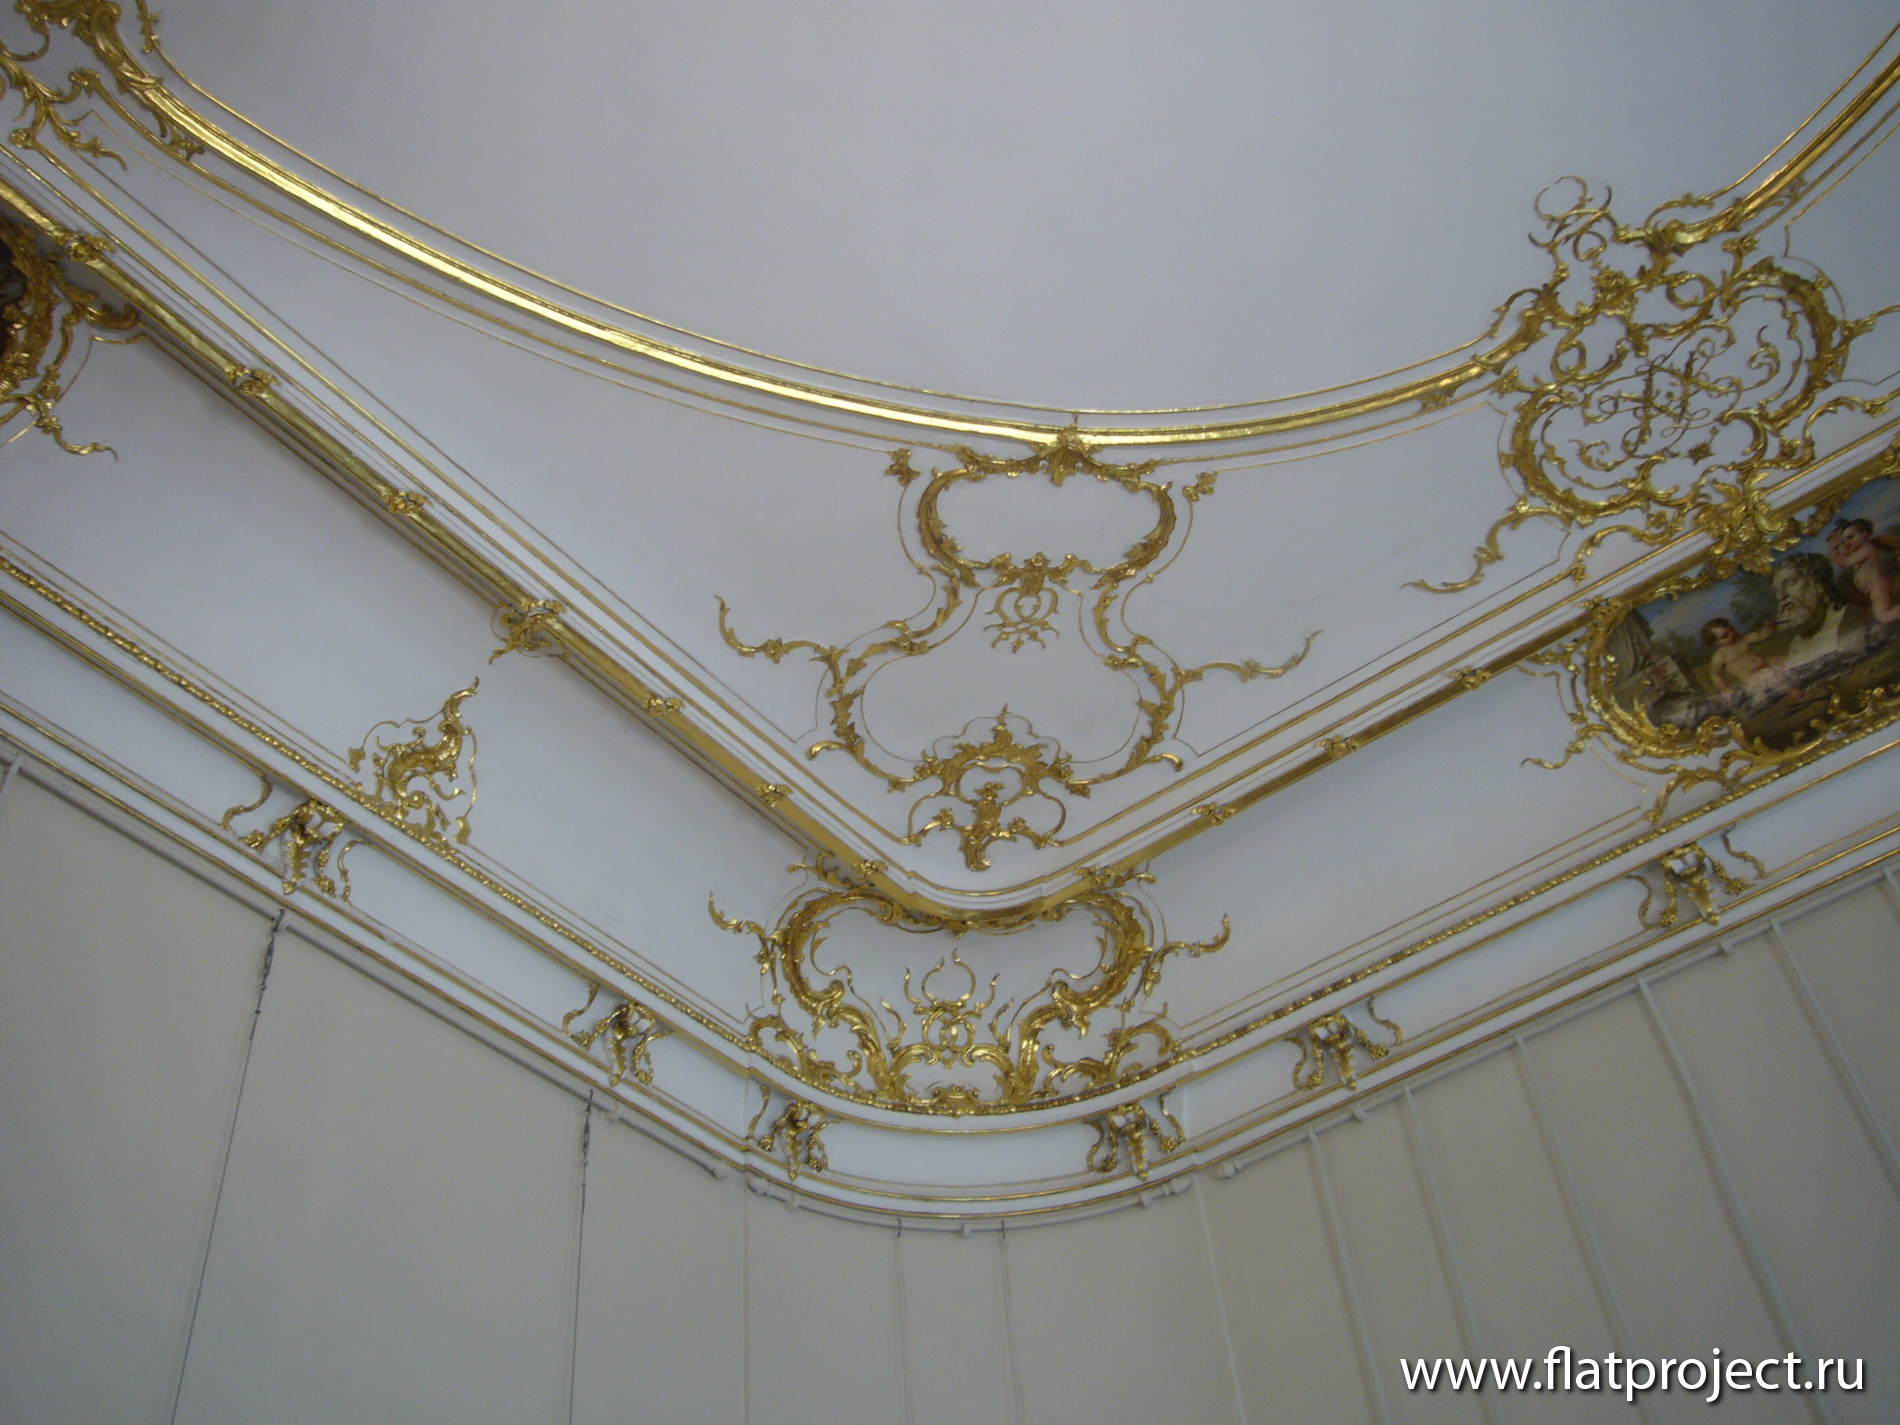 The State Russian museum interiors – photo 36